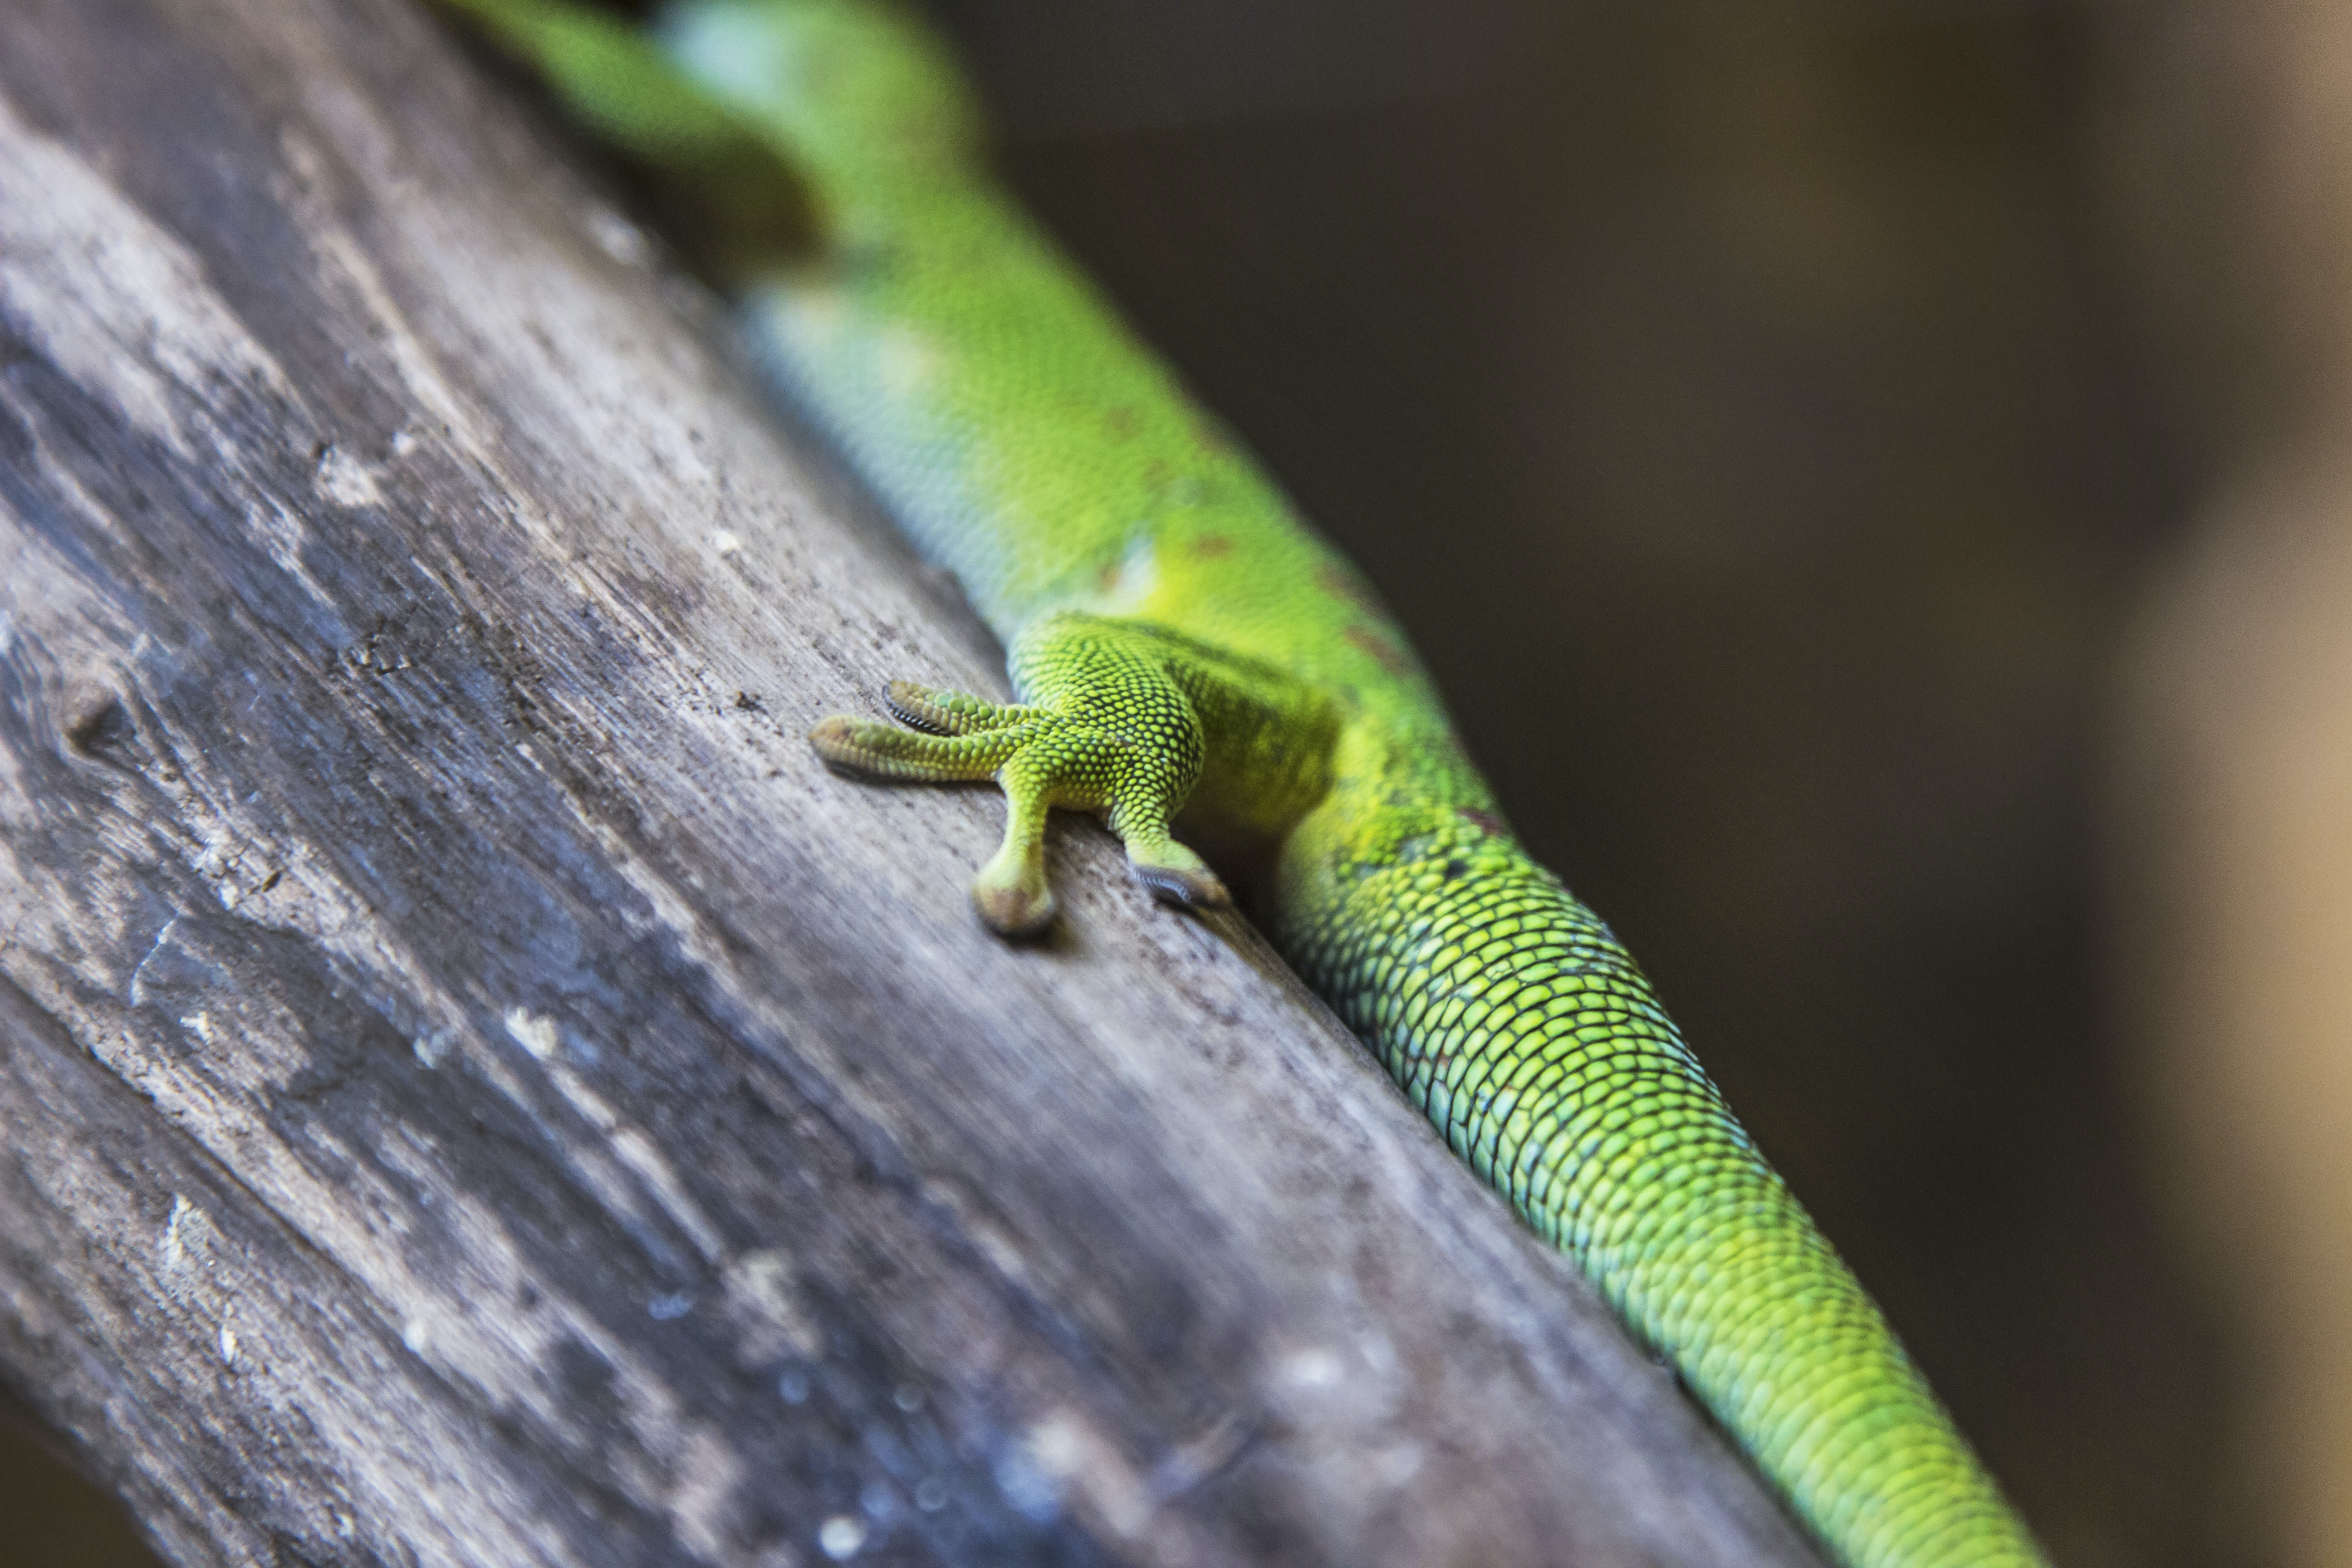 green gecko perched on wood